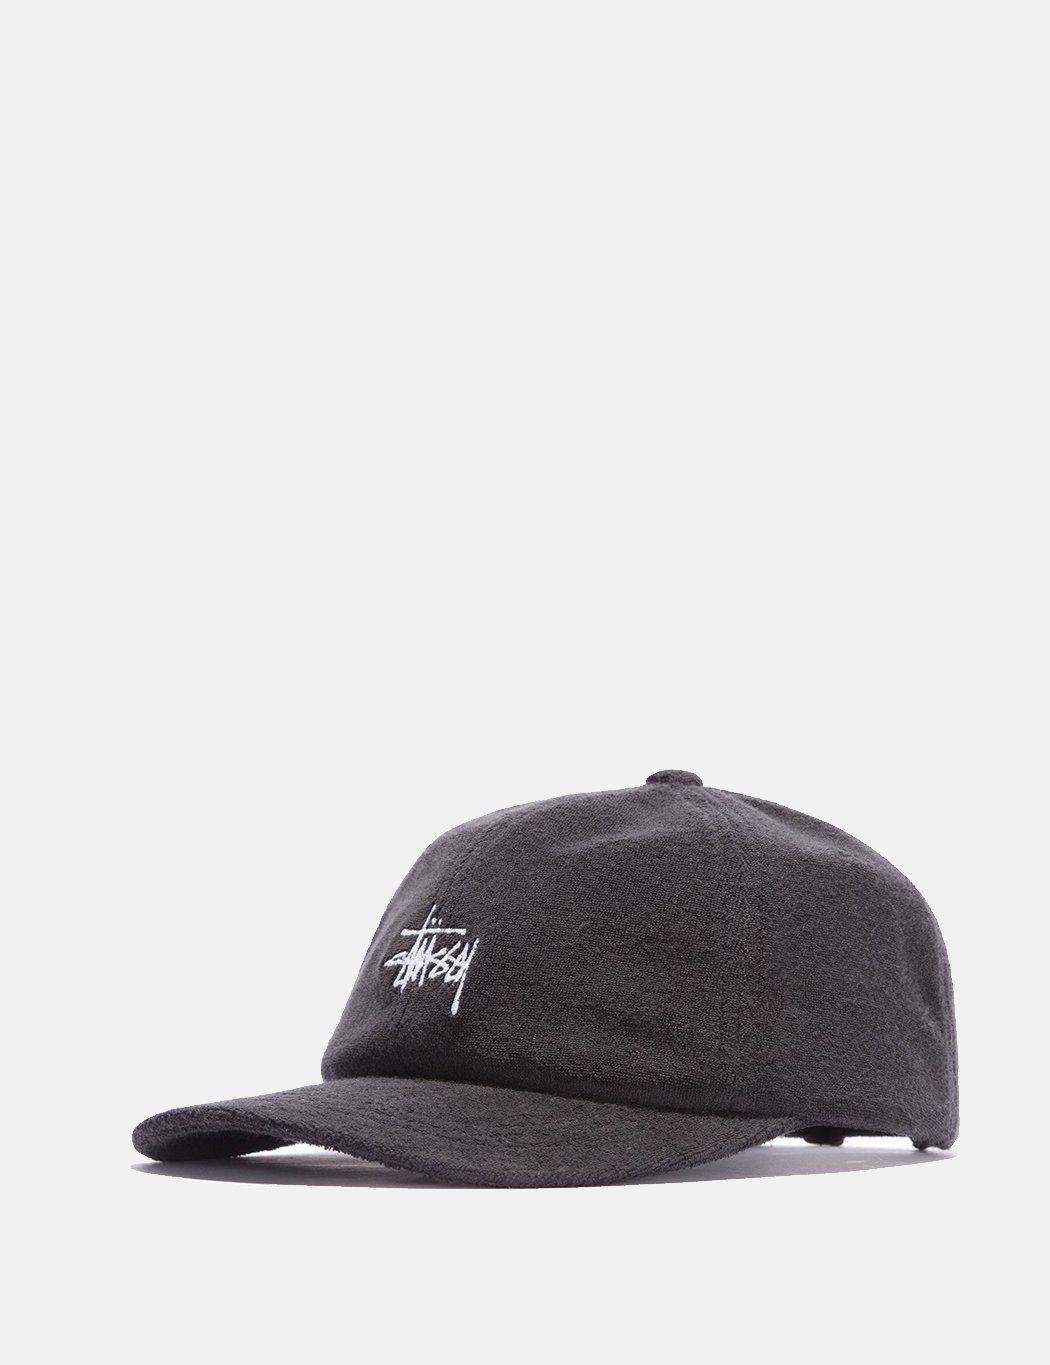 f80fea8be20 Lyst - Stussy Stock Terry Cloth Low Pro Cap in Black for Men